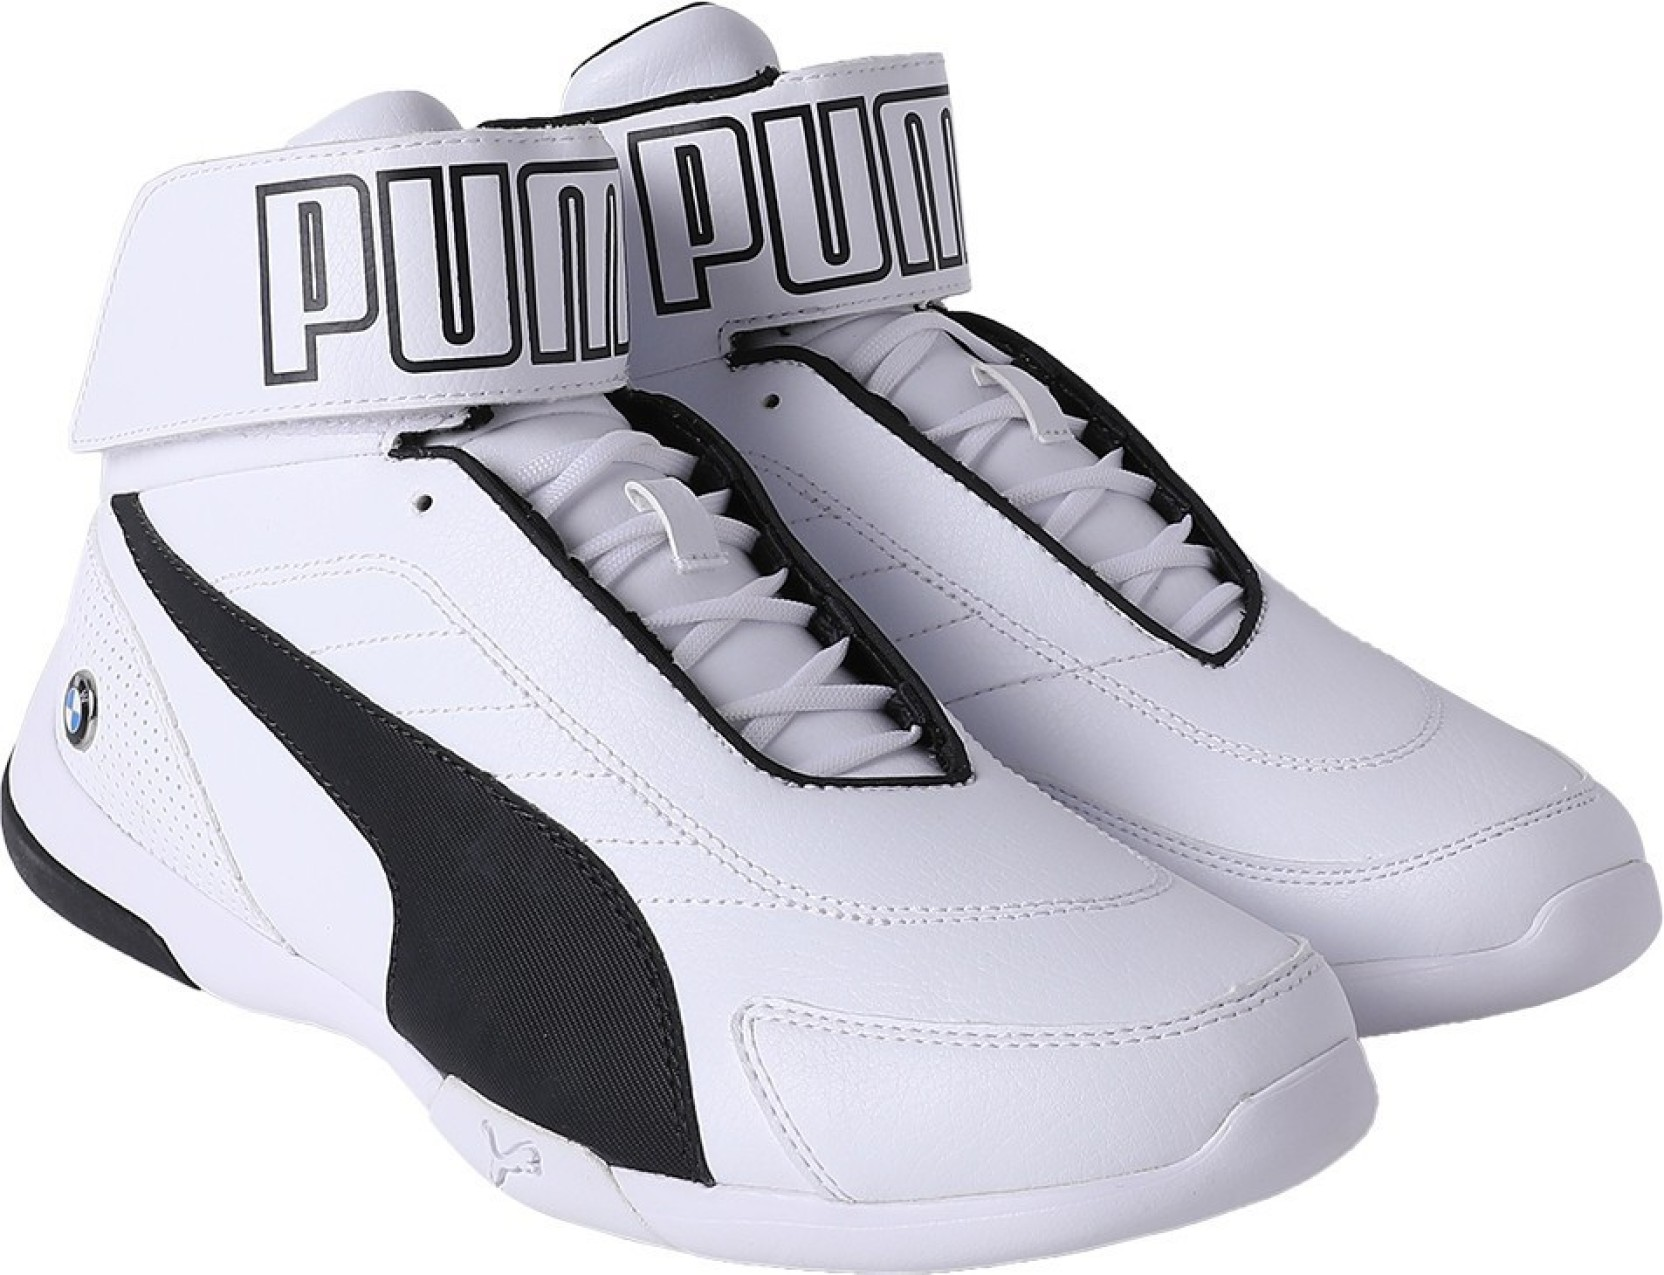 209ab524273798 Puma BMW MMS Kart Cat Mid III Sneakers For Men - Buy Puma BMW MMS ...